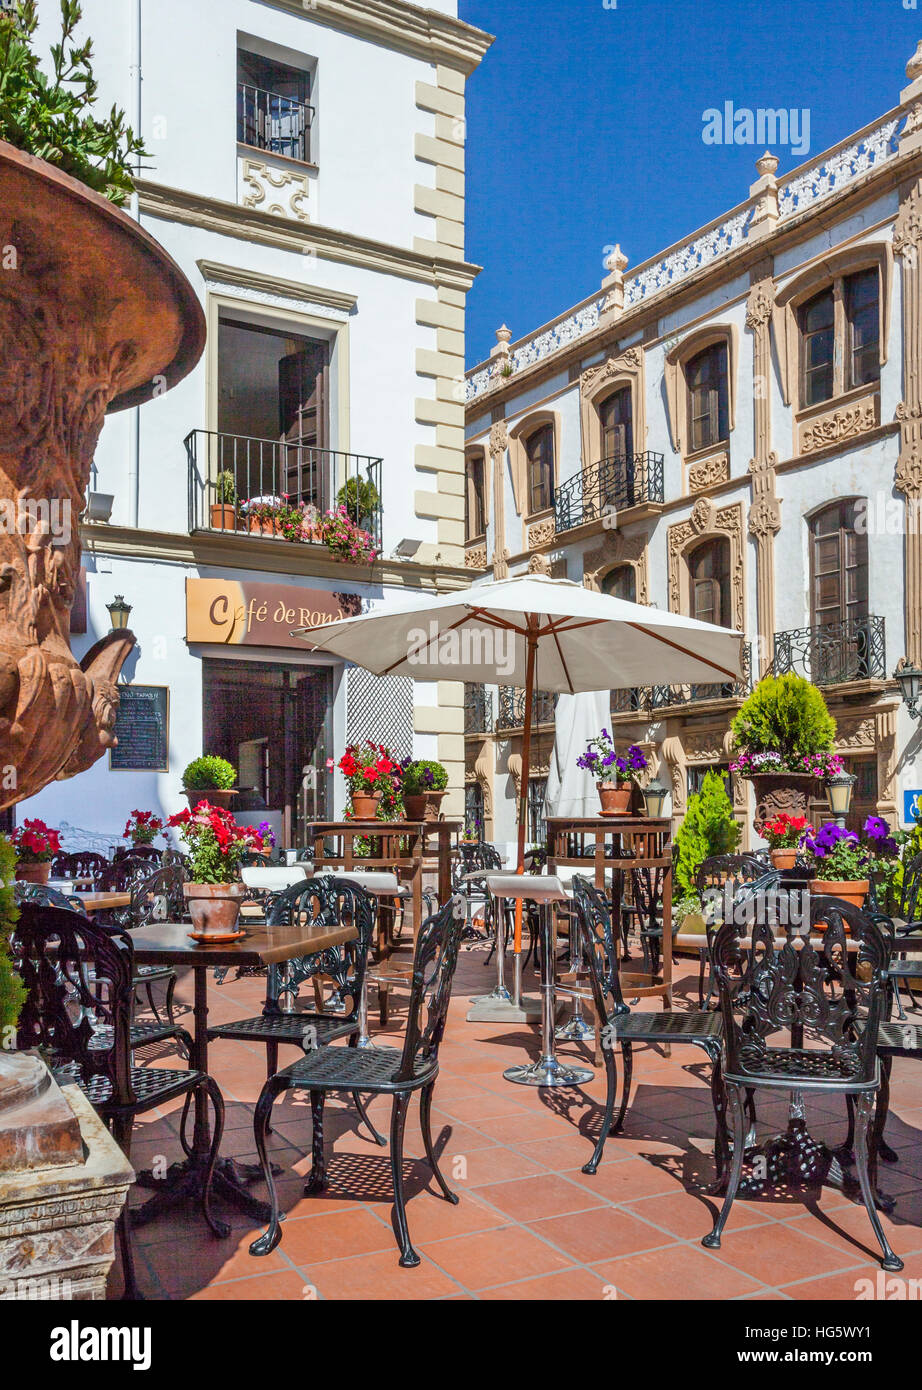 Spain, Andalusia, Province of Malaga, cafe terrace in La Ciudad, the Old Town of Ronda - Stock Image